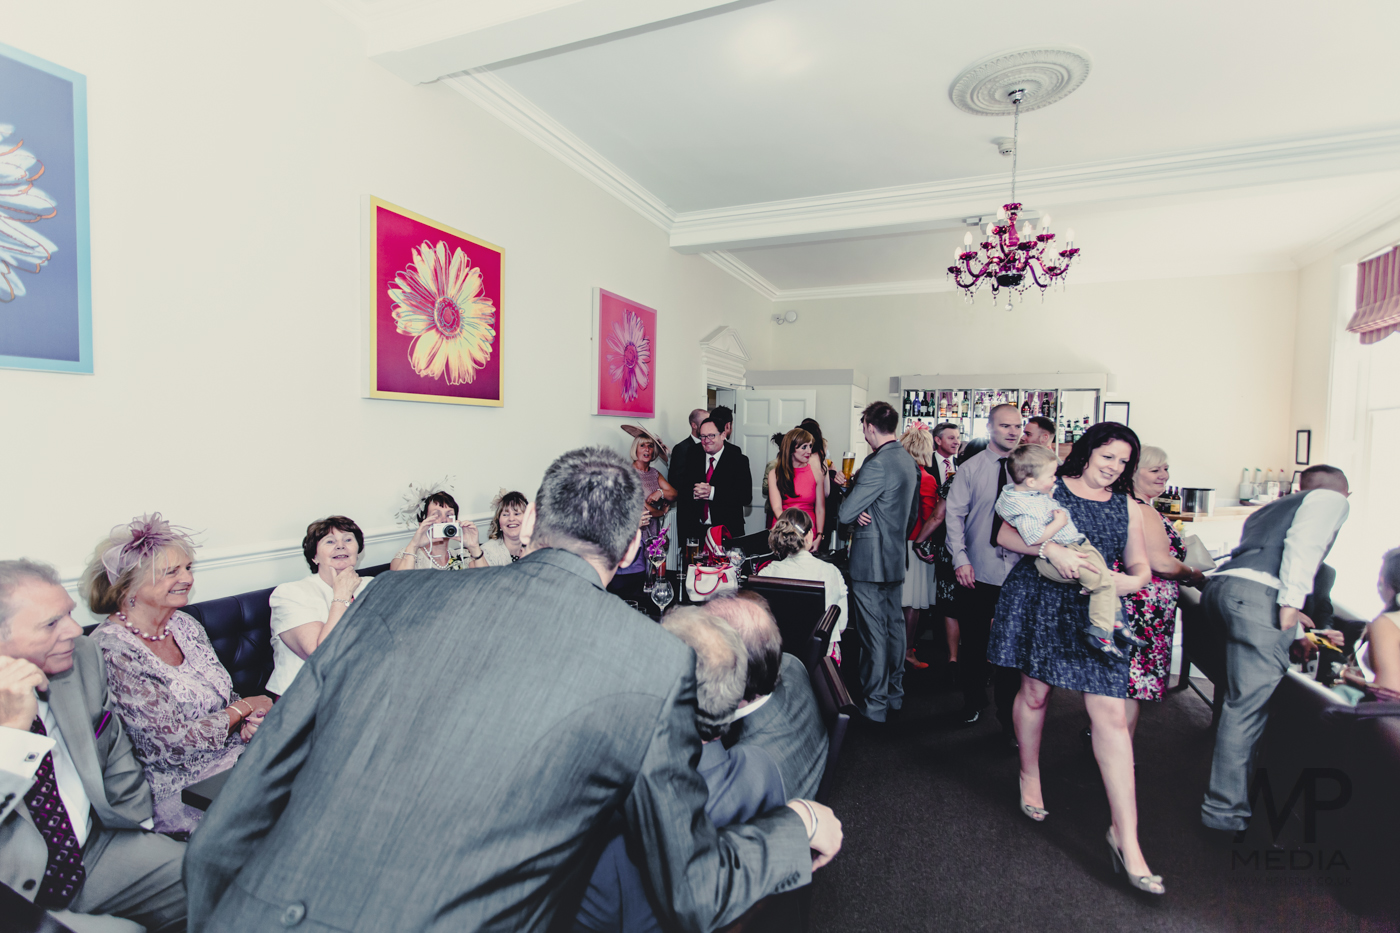 457 - Chris and Natalies Wedding (MAIN) - DO NOT SHARE THIS IMAGES ONLINE -0787.JPG